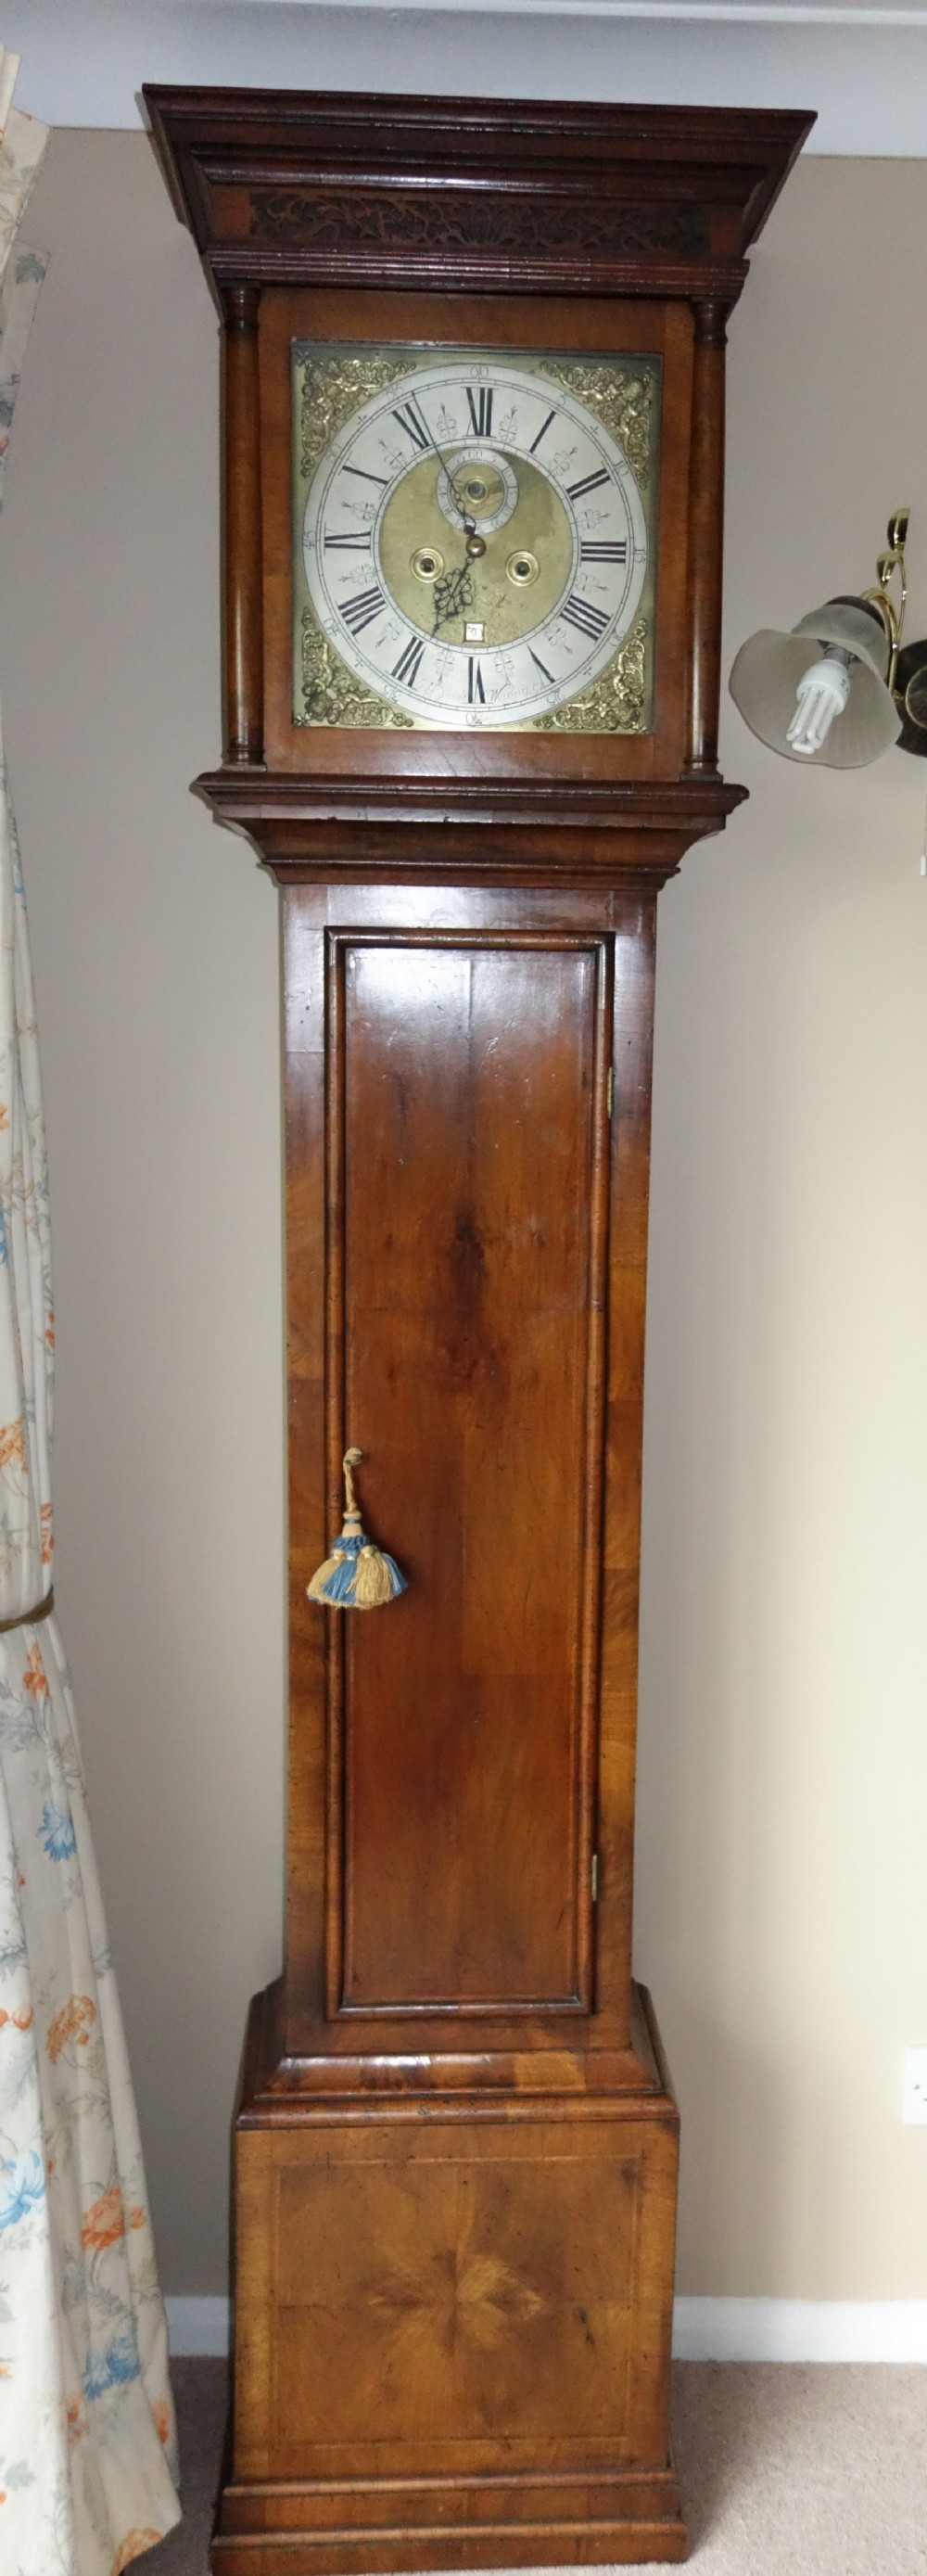 london cc1740 walnut 8 day grandfather longcase clock john harrington early georgian george ii or early george iii